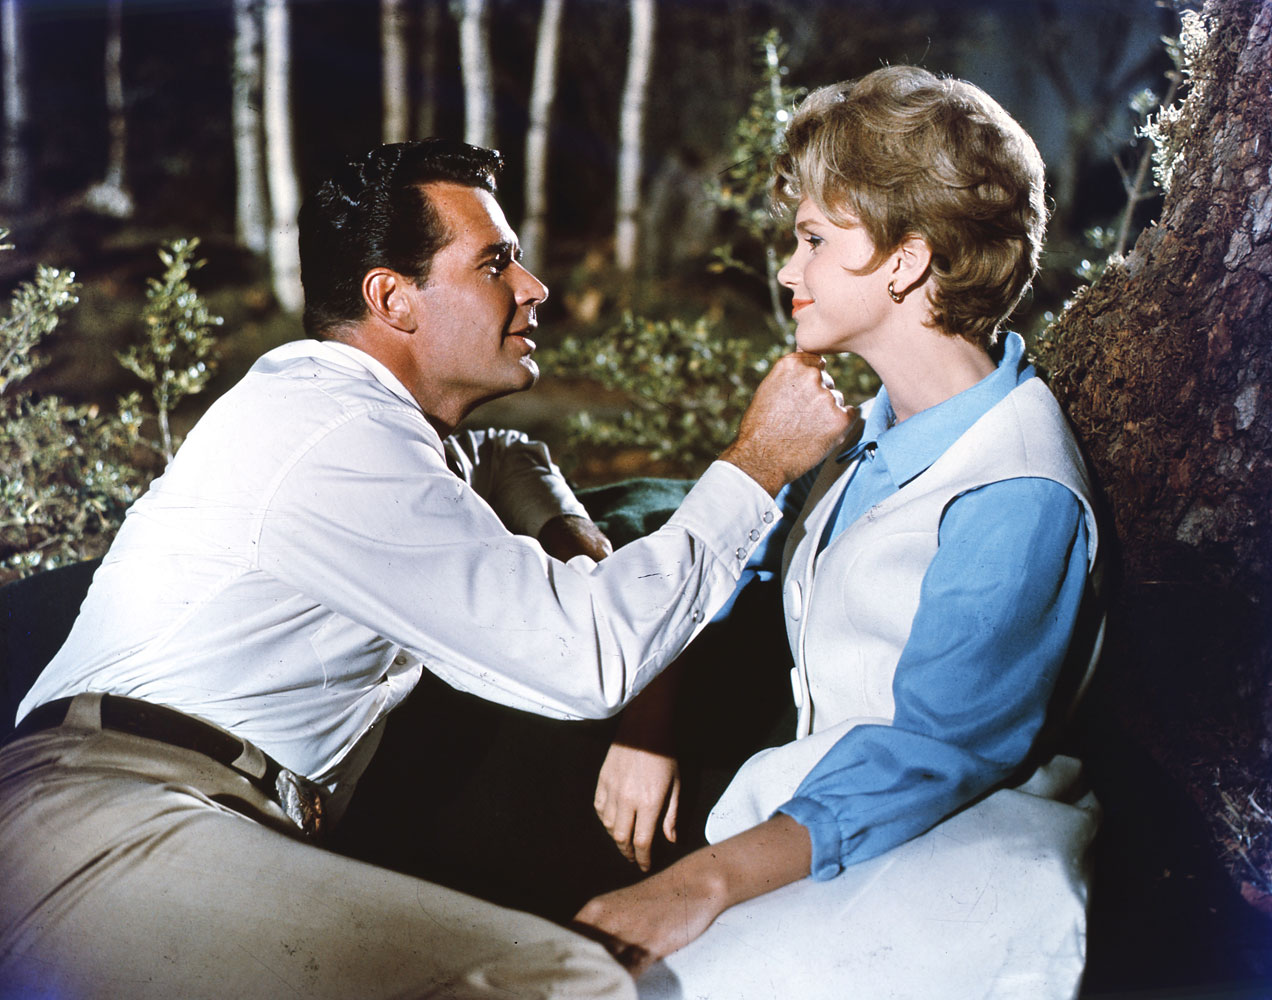 Garner as Henry Tyroon and Lee Remick as Molly Thatcher in 'The Wheeler Dealers', 1963.